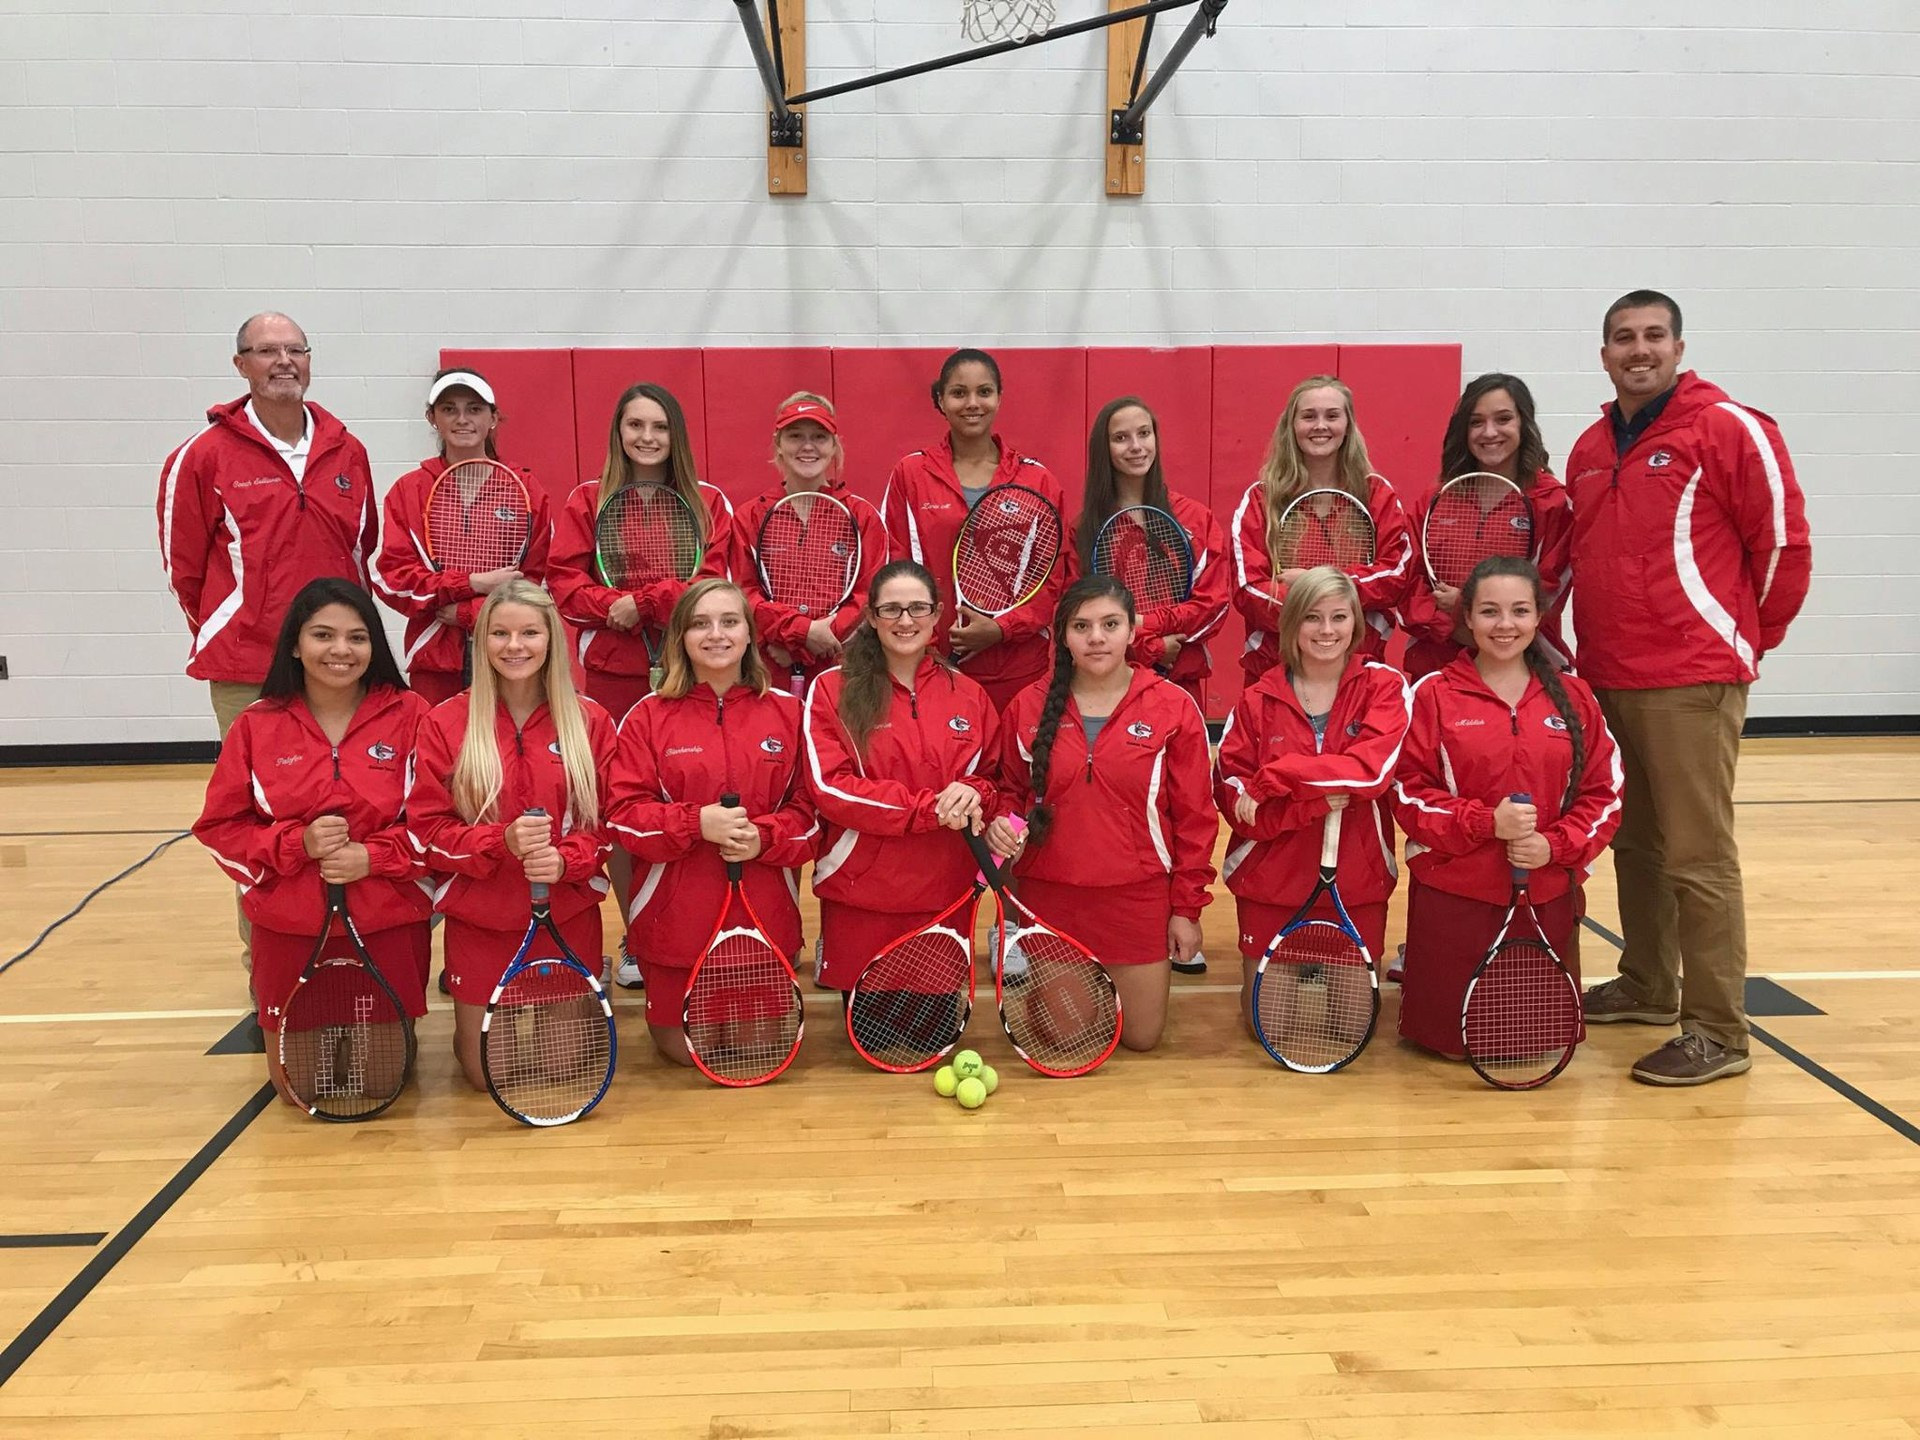 2017 Girls Tennis